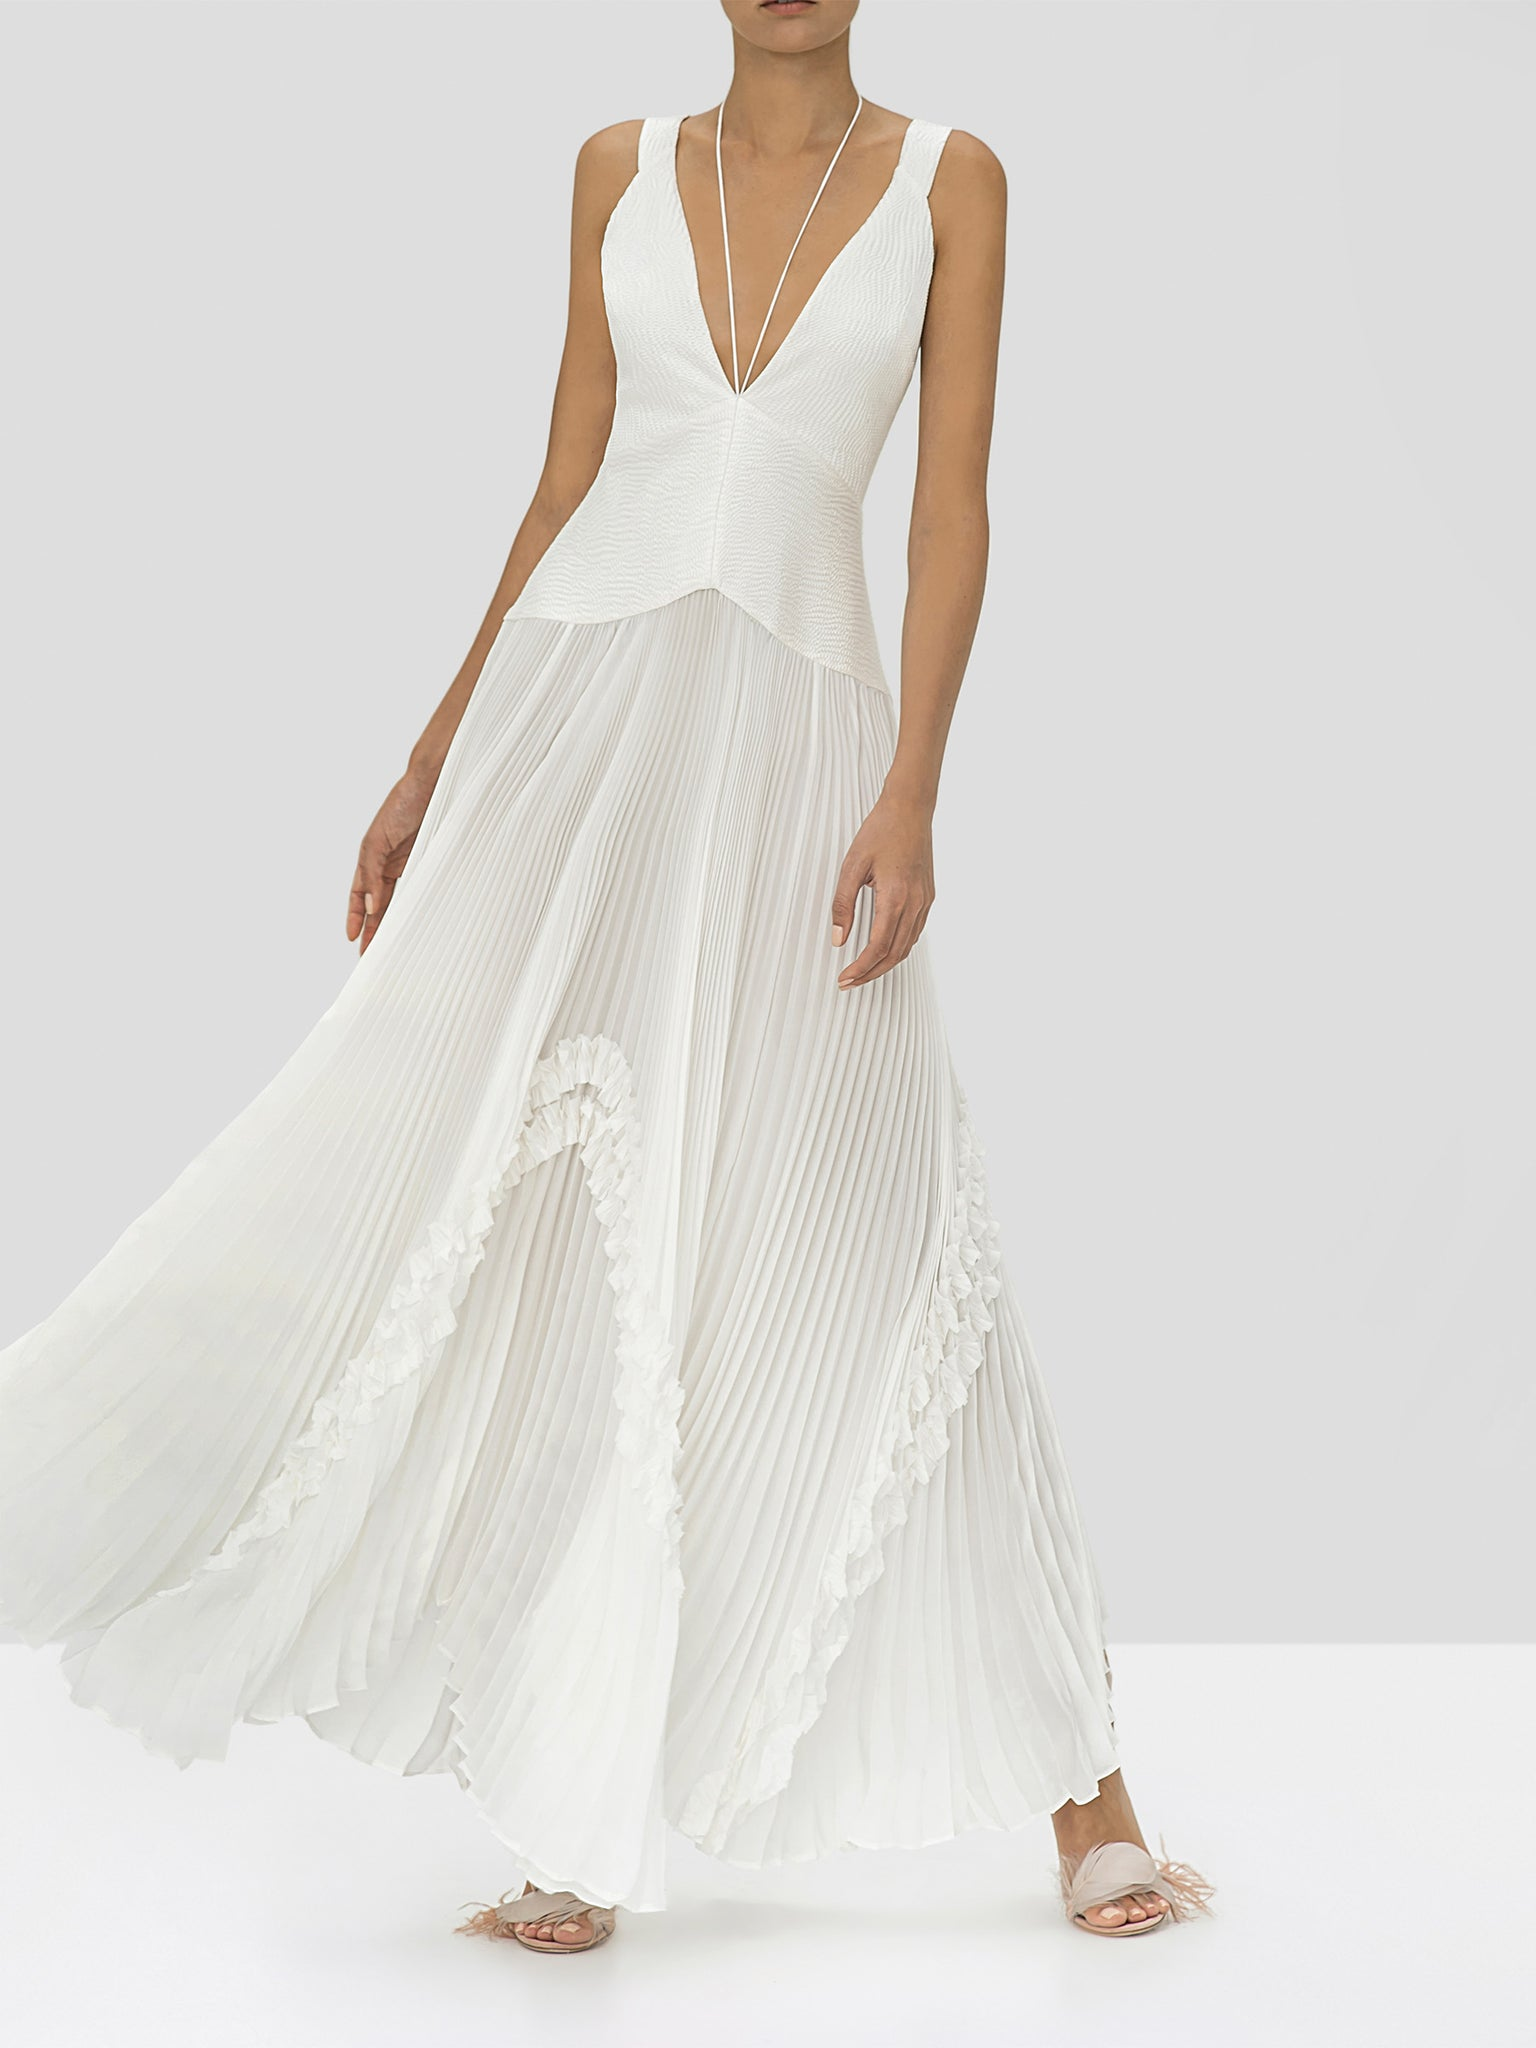 Alexis Bellona Dress in Ivory from the Holiday 2019 Ready To Wear Collection